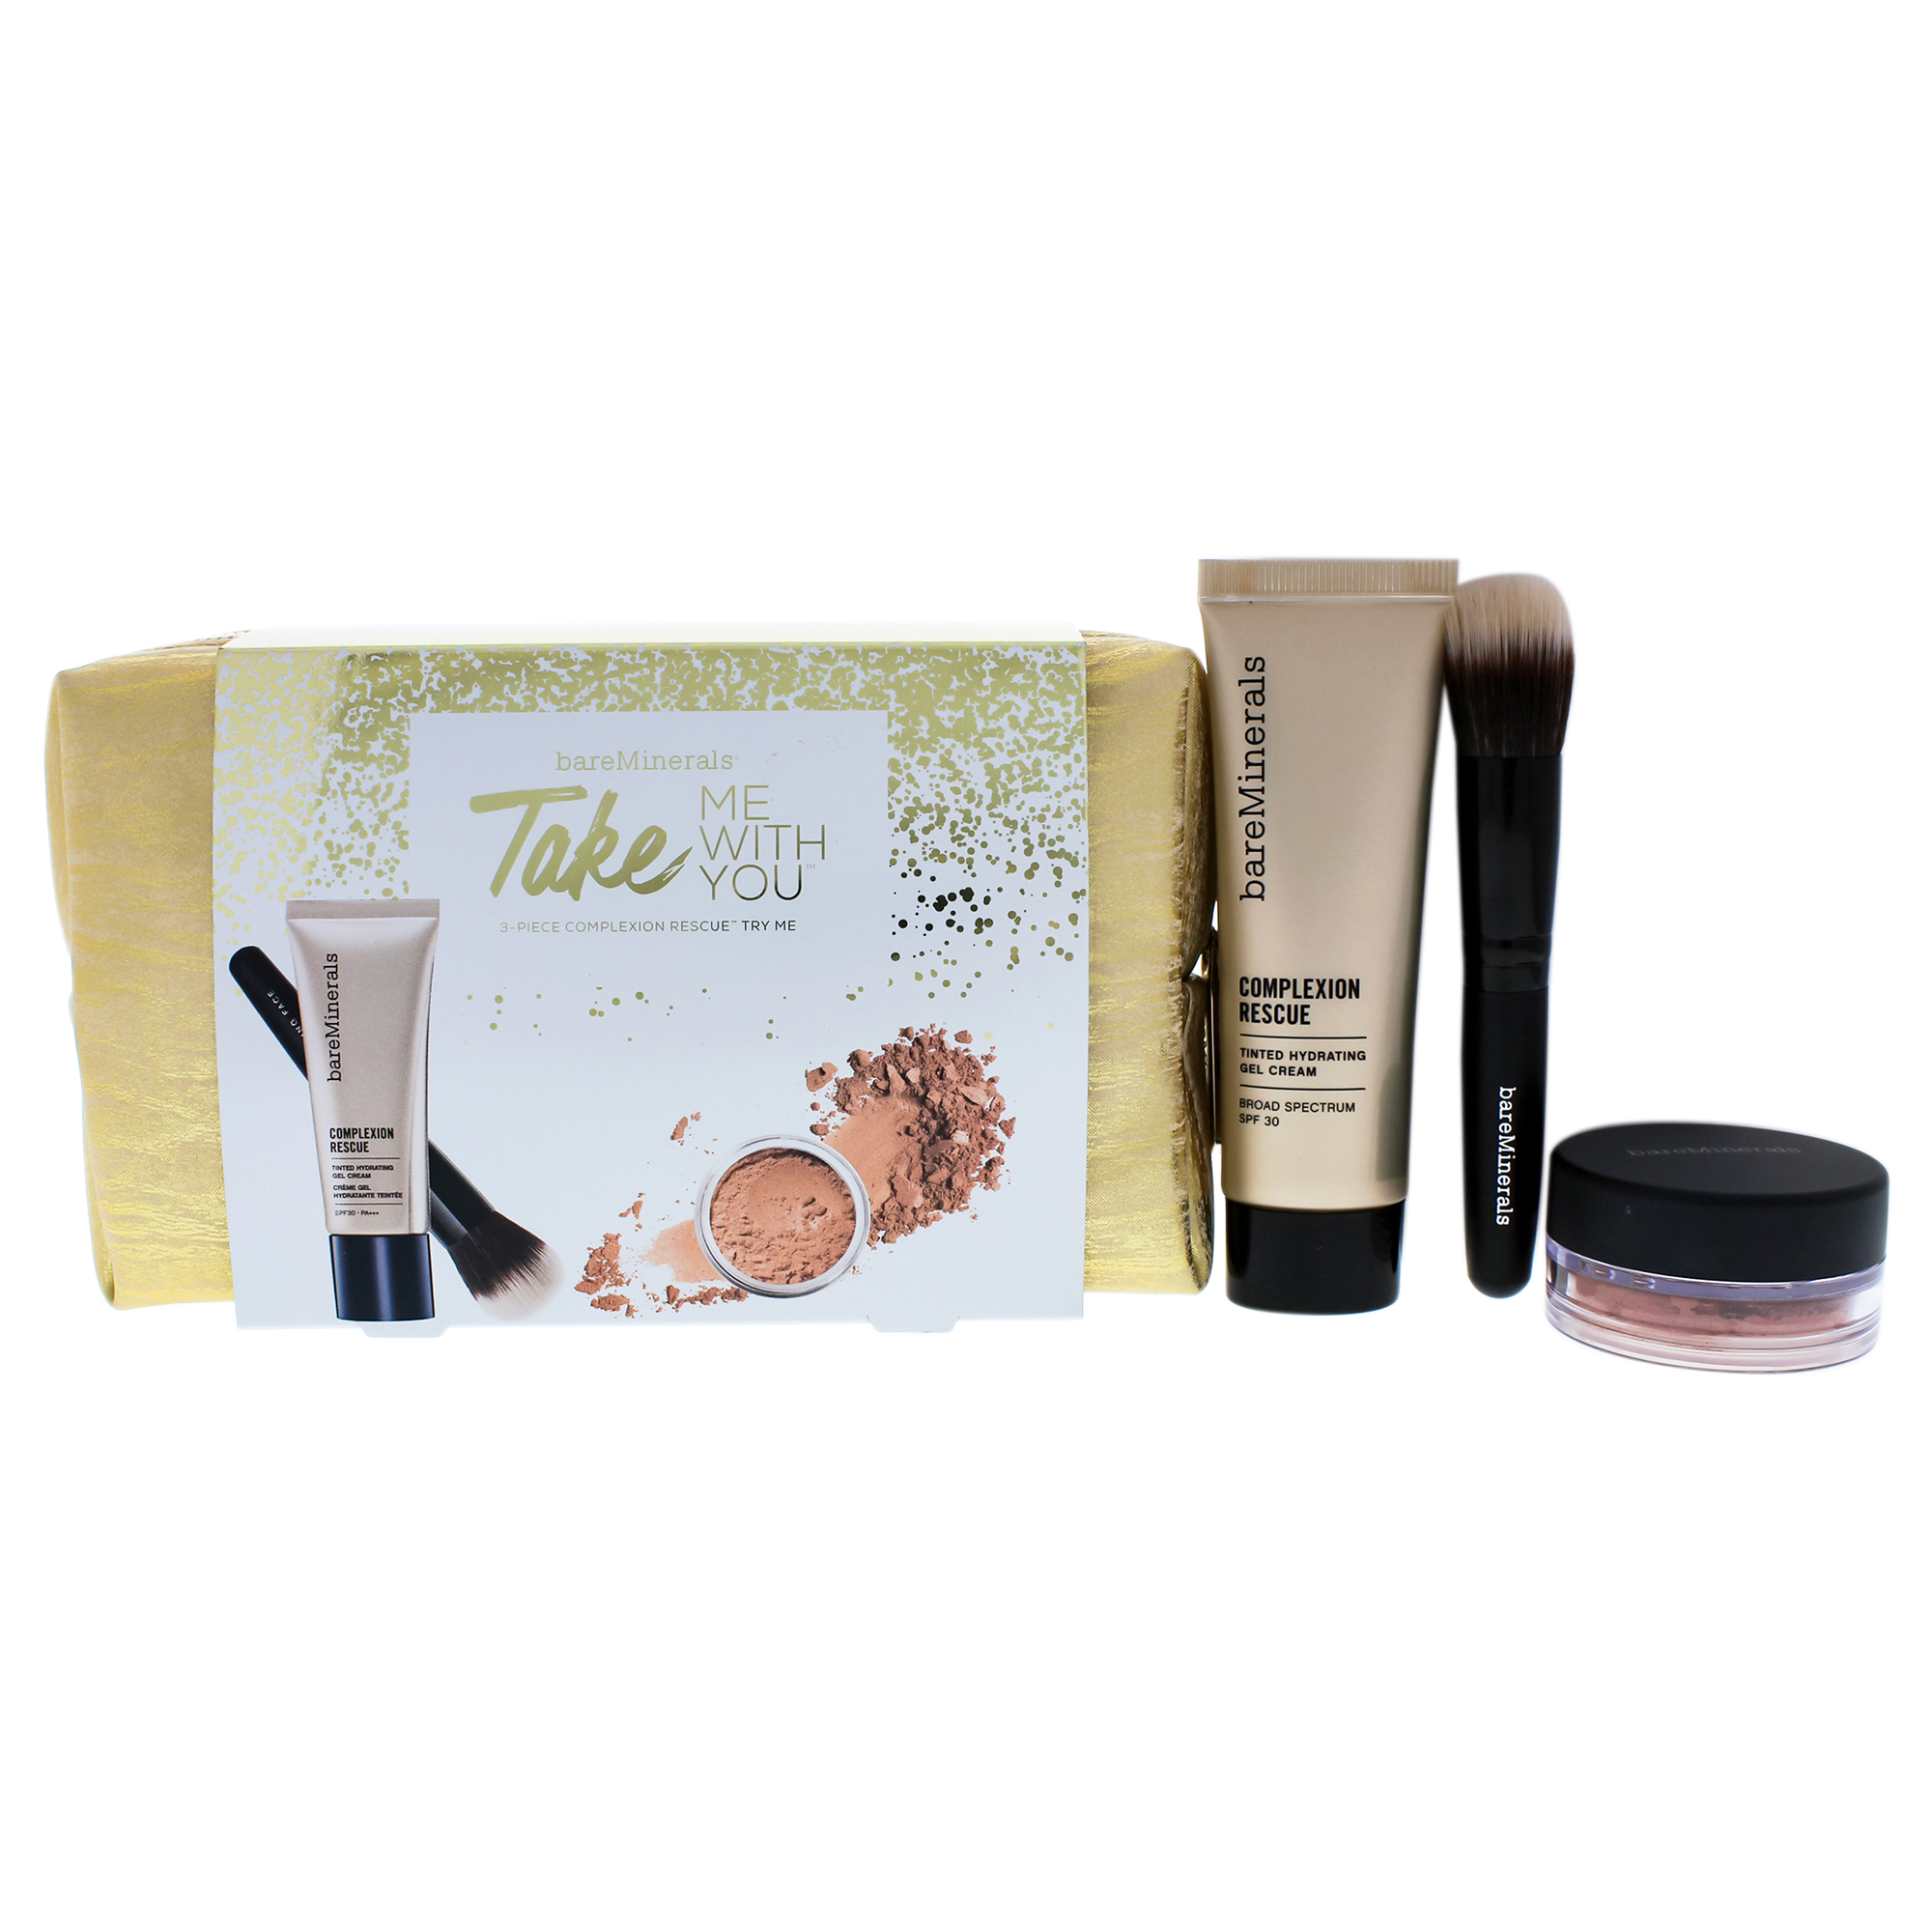 Take Me With You - 07 Tan by bareMinerals for Women - 4 Pc Set 0.03oz Blush - Golden Gate, 0.68oz Co